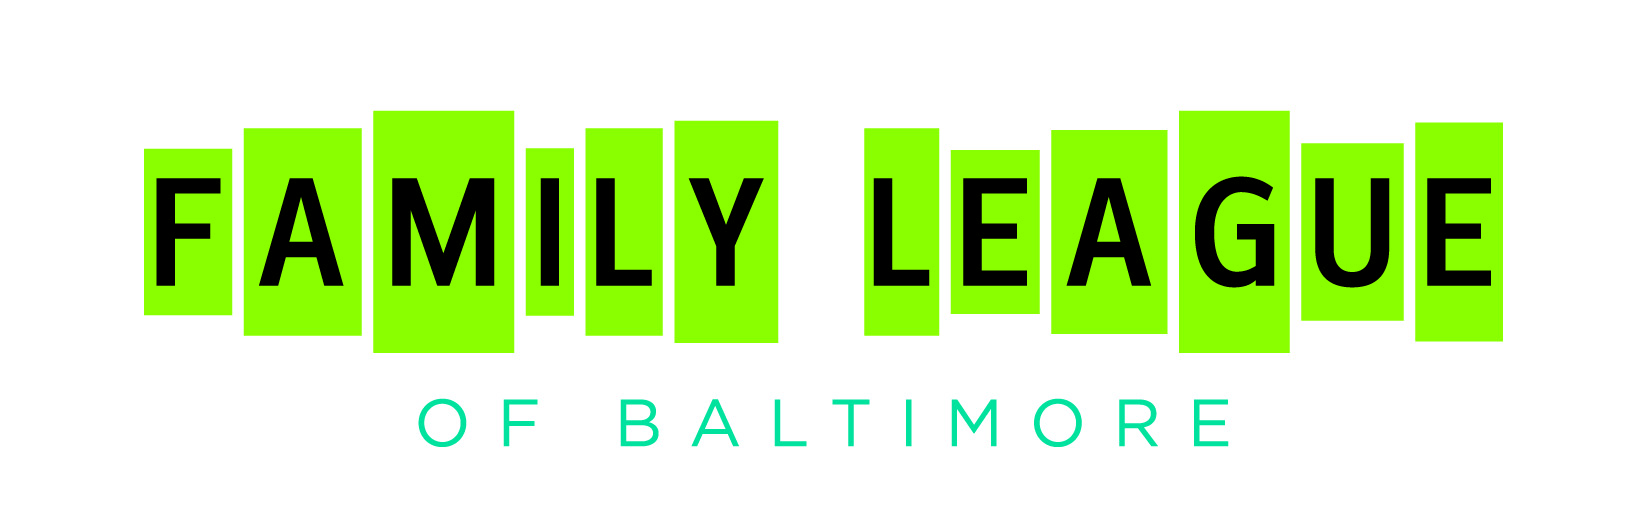 FamilyLeague_Logo_hi_quality_print.jpg